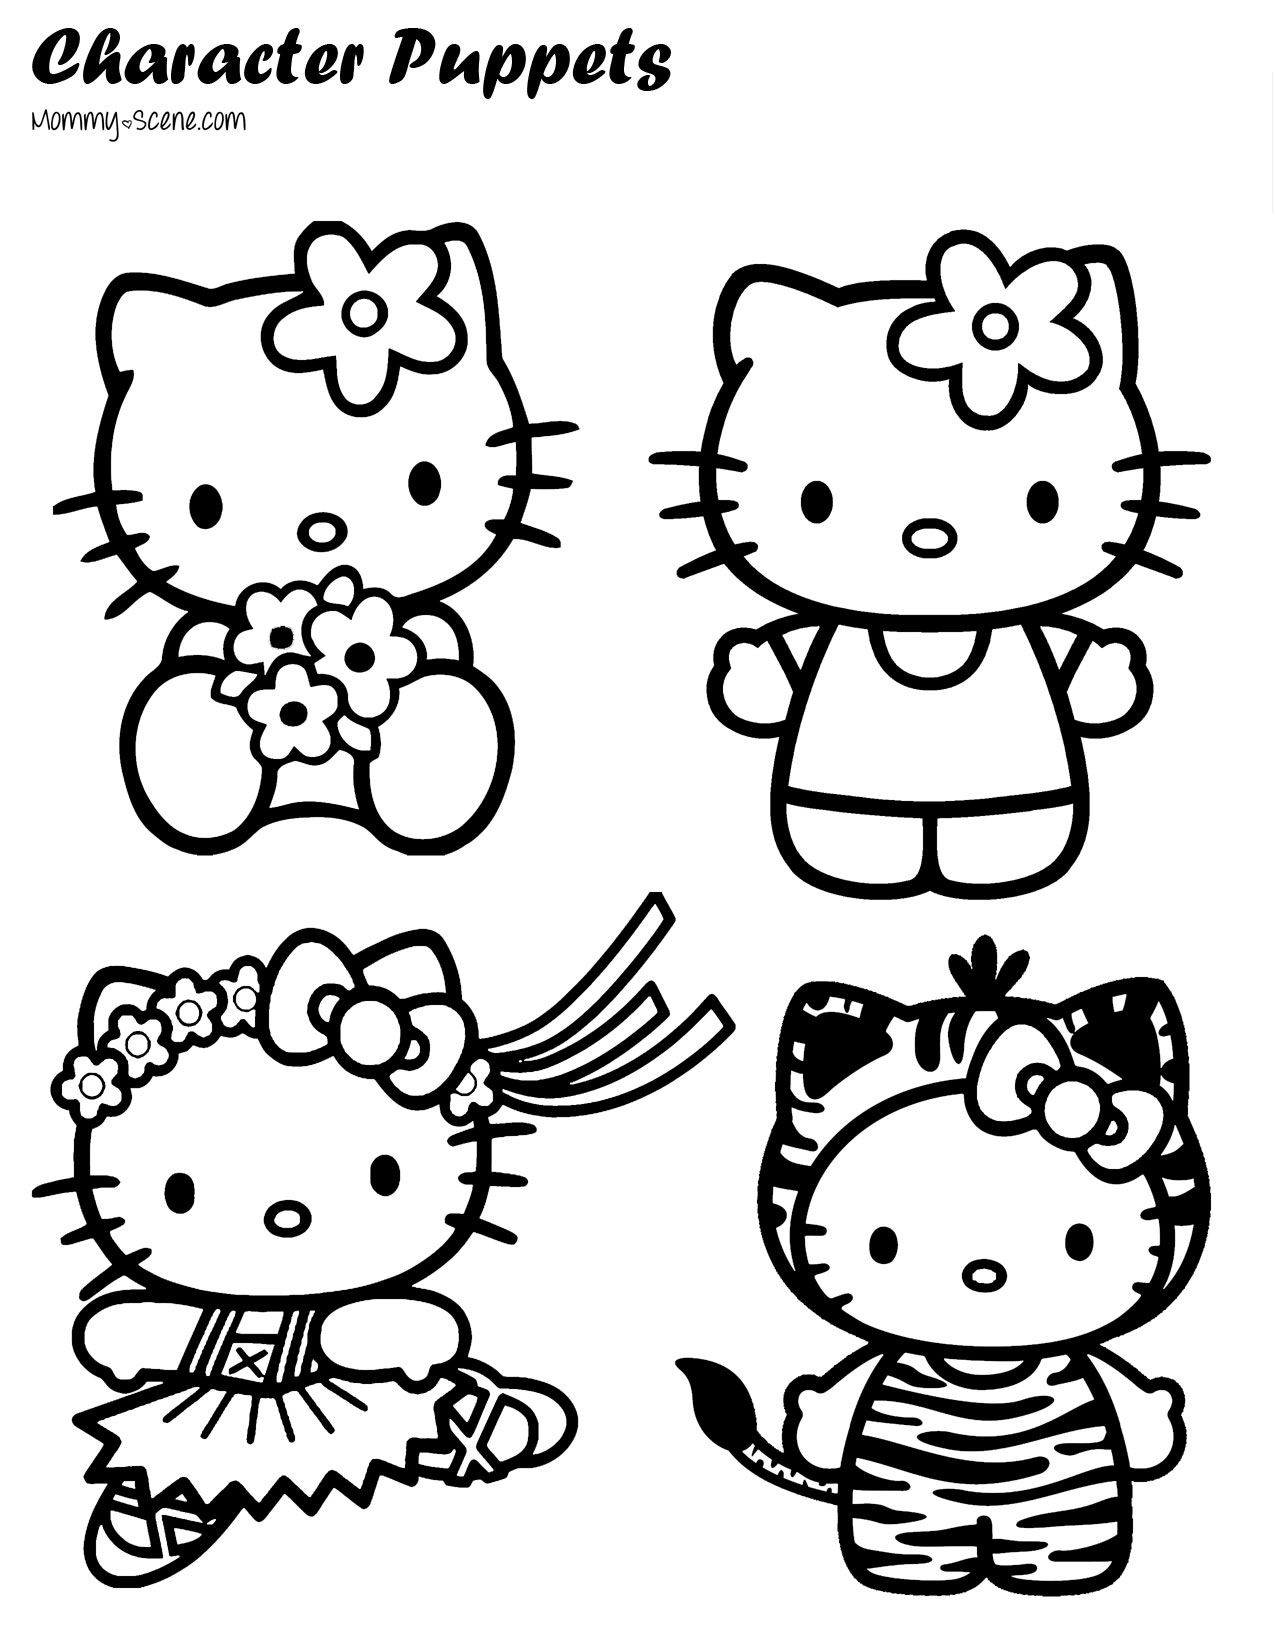 Home Create Play Travel Hello Kitty Colouring Pages Hello Kitty Coloring Kitty Coloring